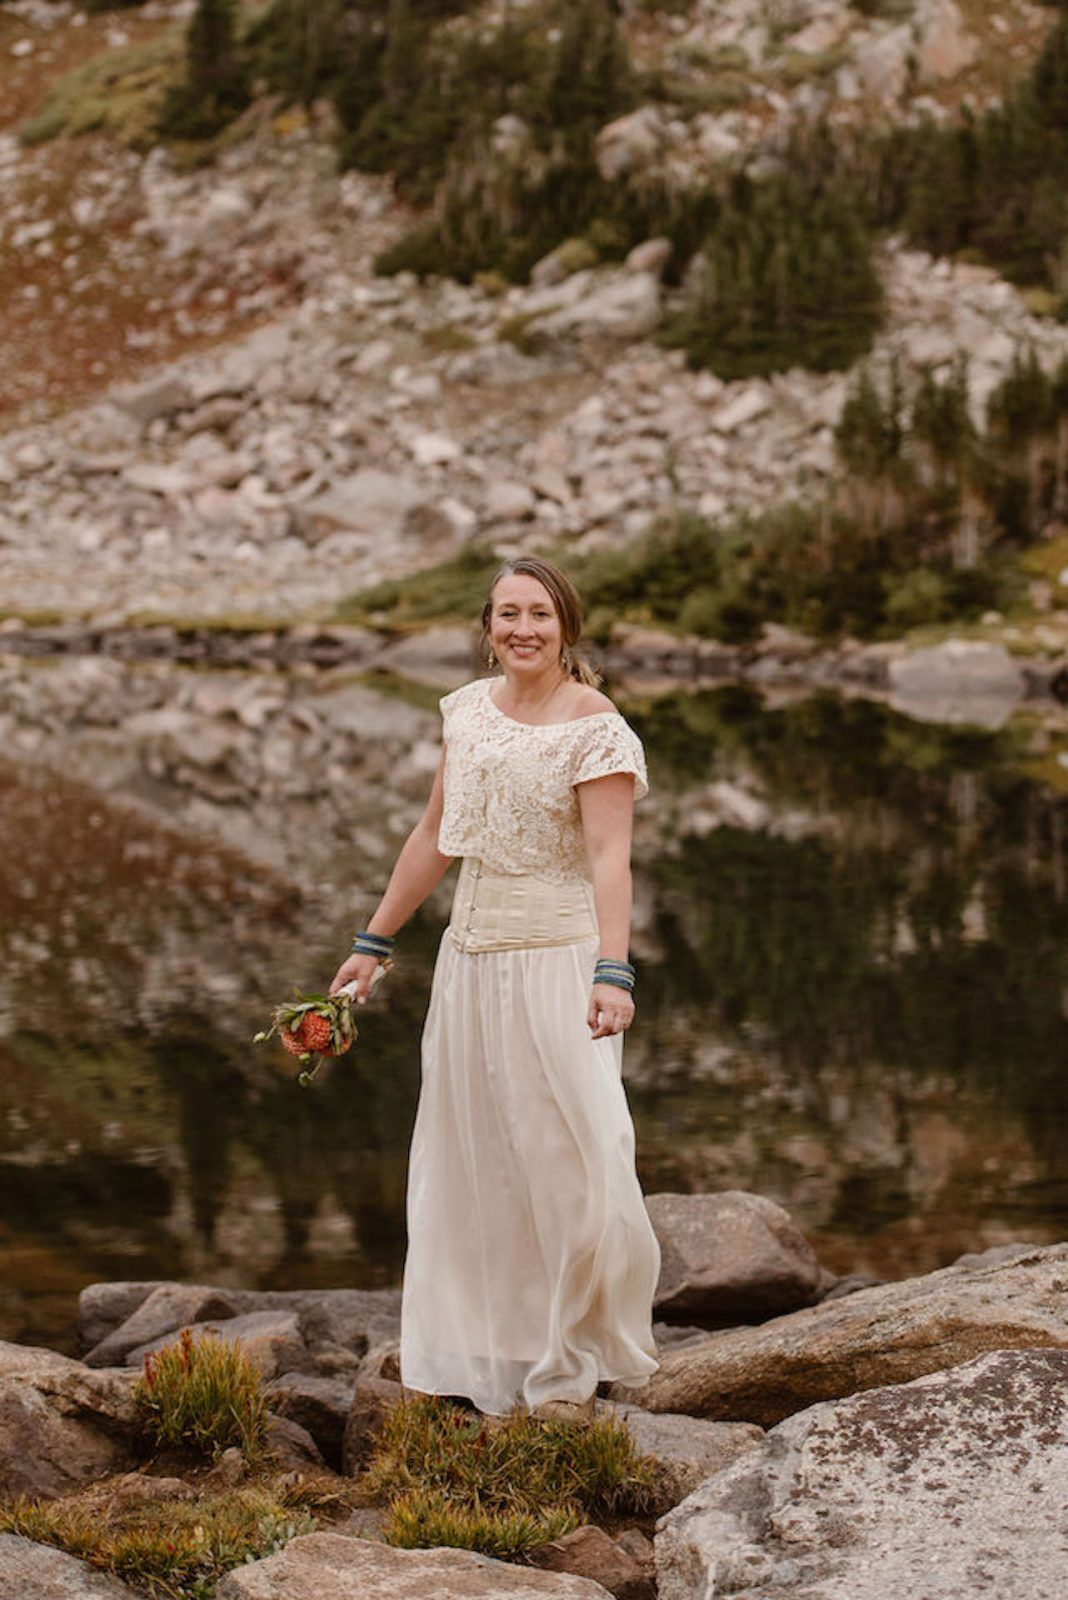 private elopement in the mountains wedding dress